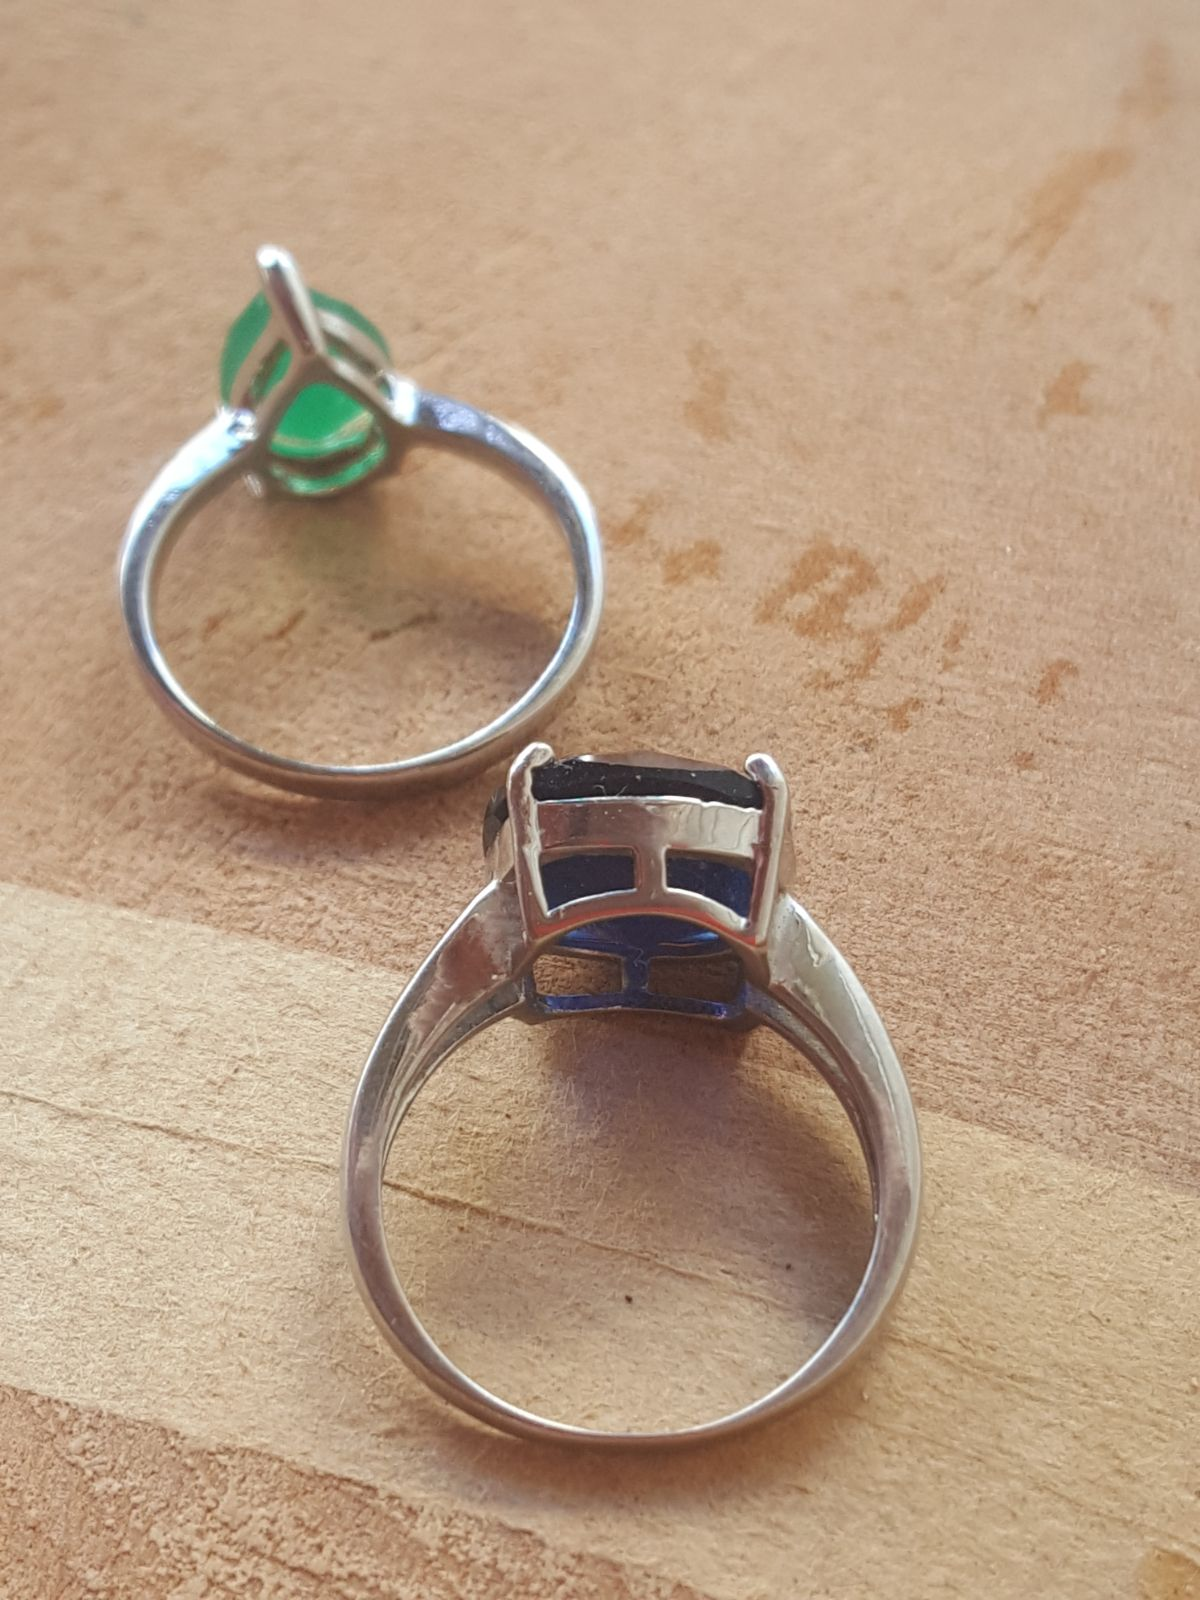 Two rings size 8